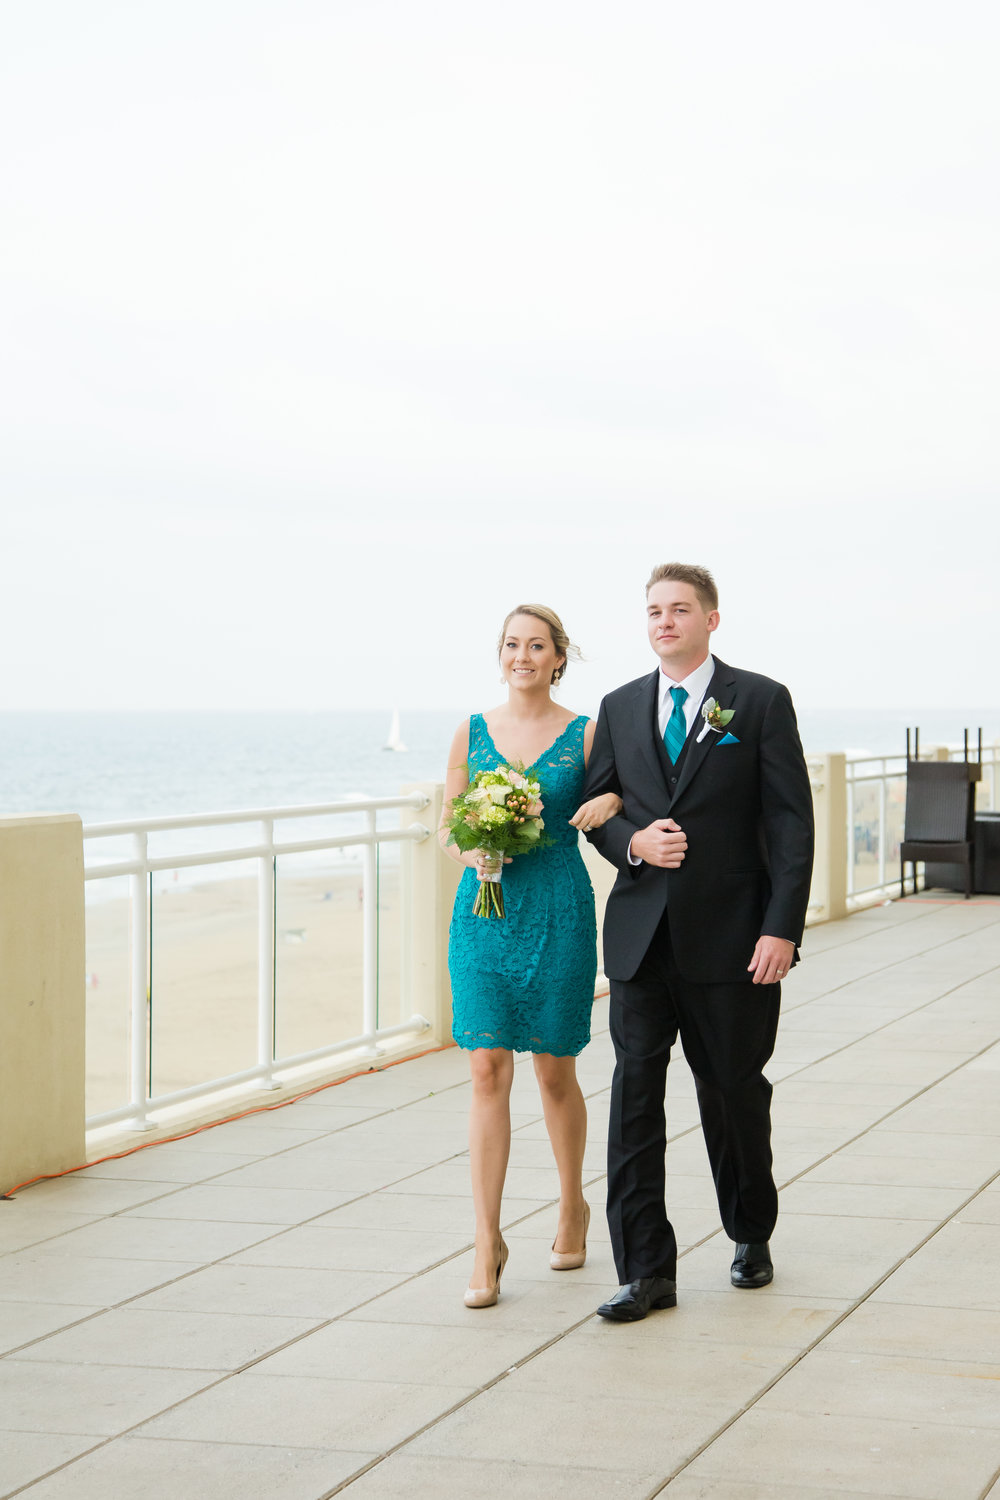 Downing_wedding_RachaelReidPhotography_-289.jpg